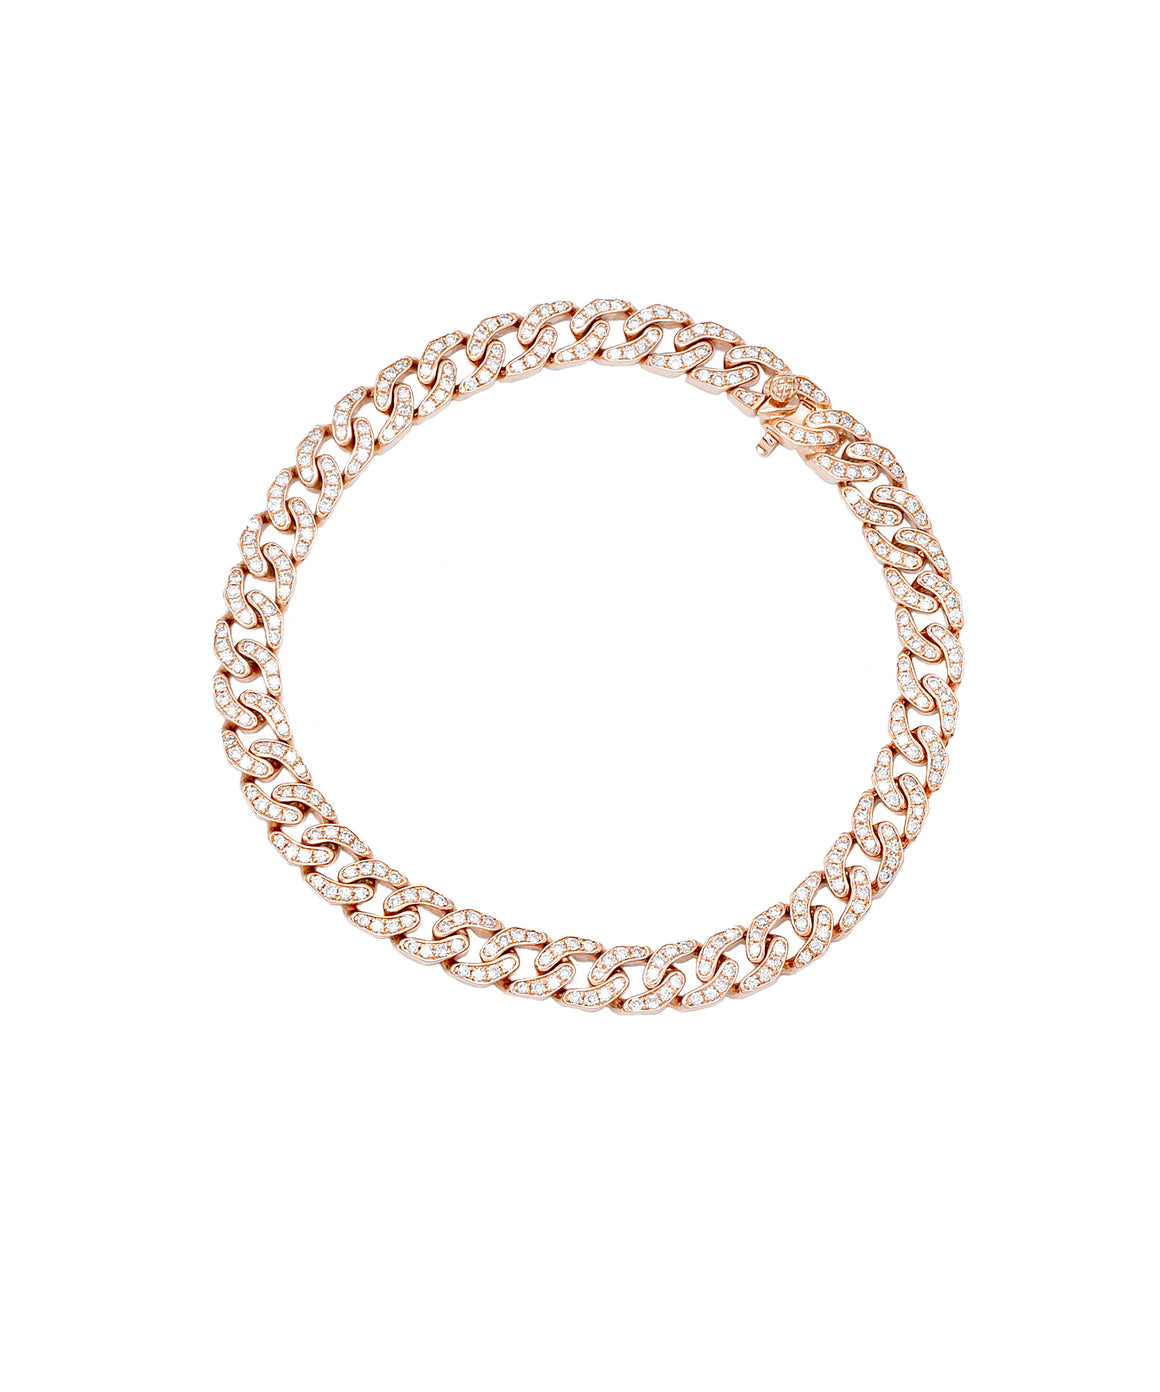 Curb Link Diamond Bracelet in Rose Gold